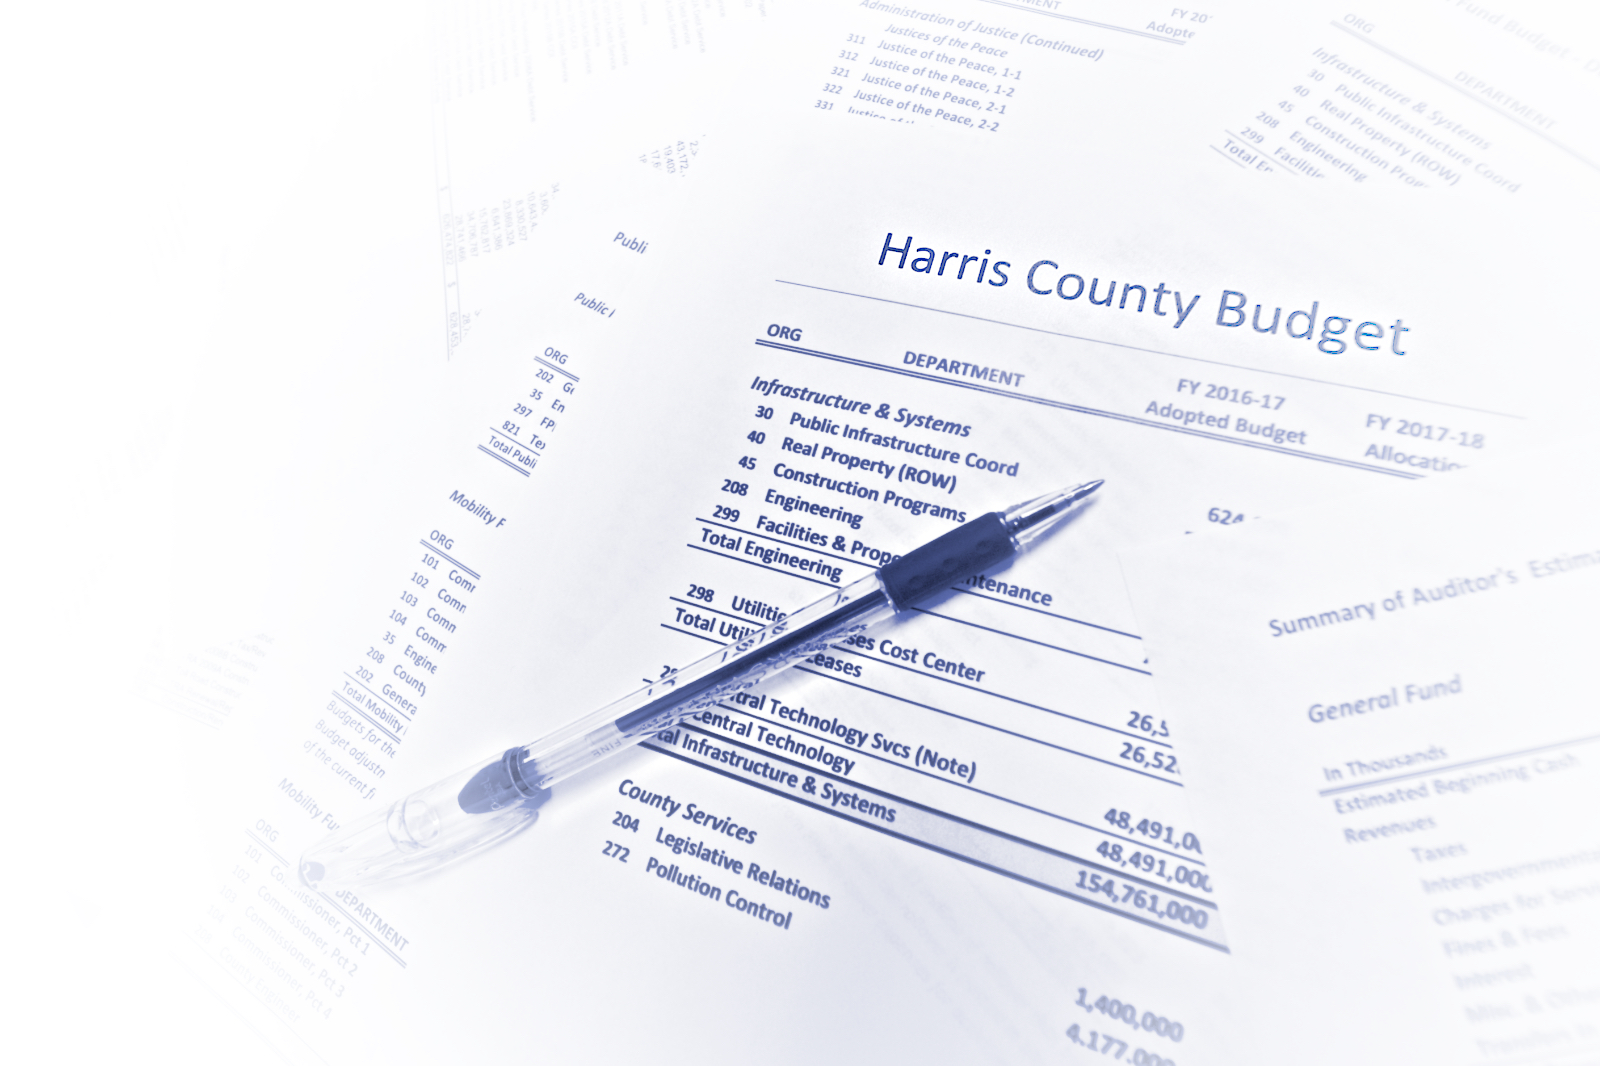 Image of budget papers